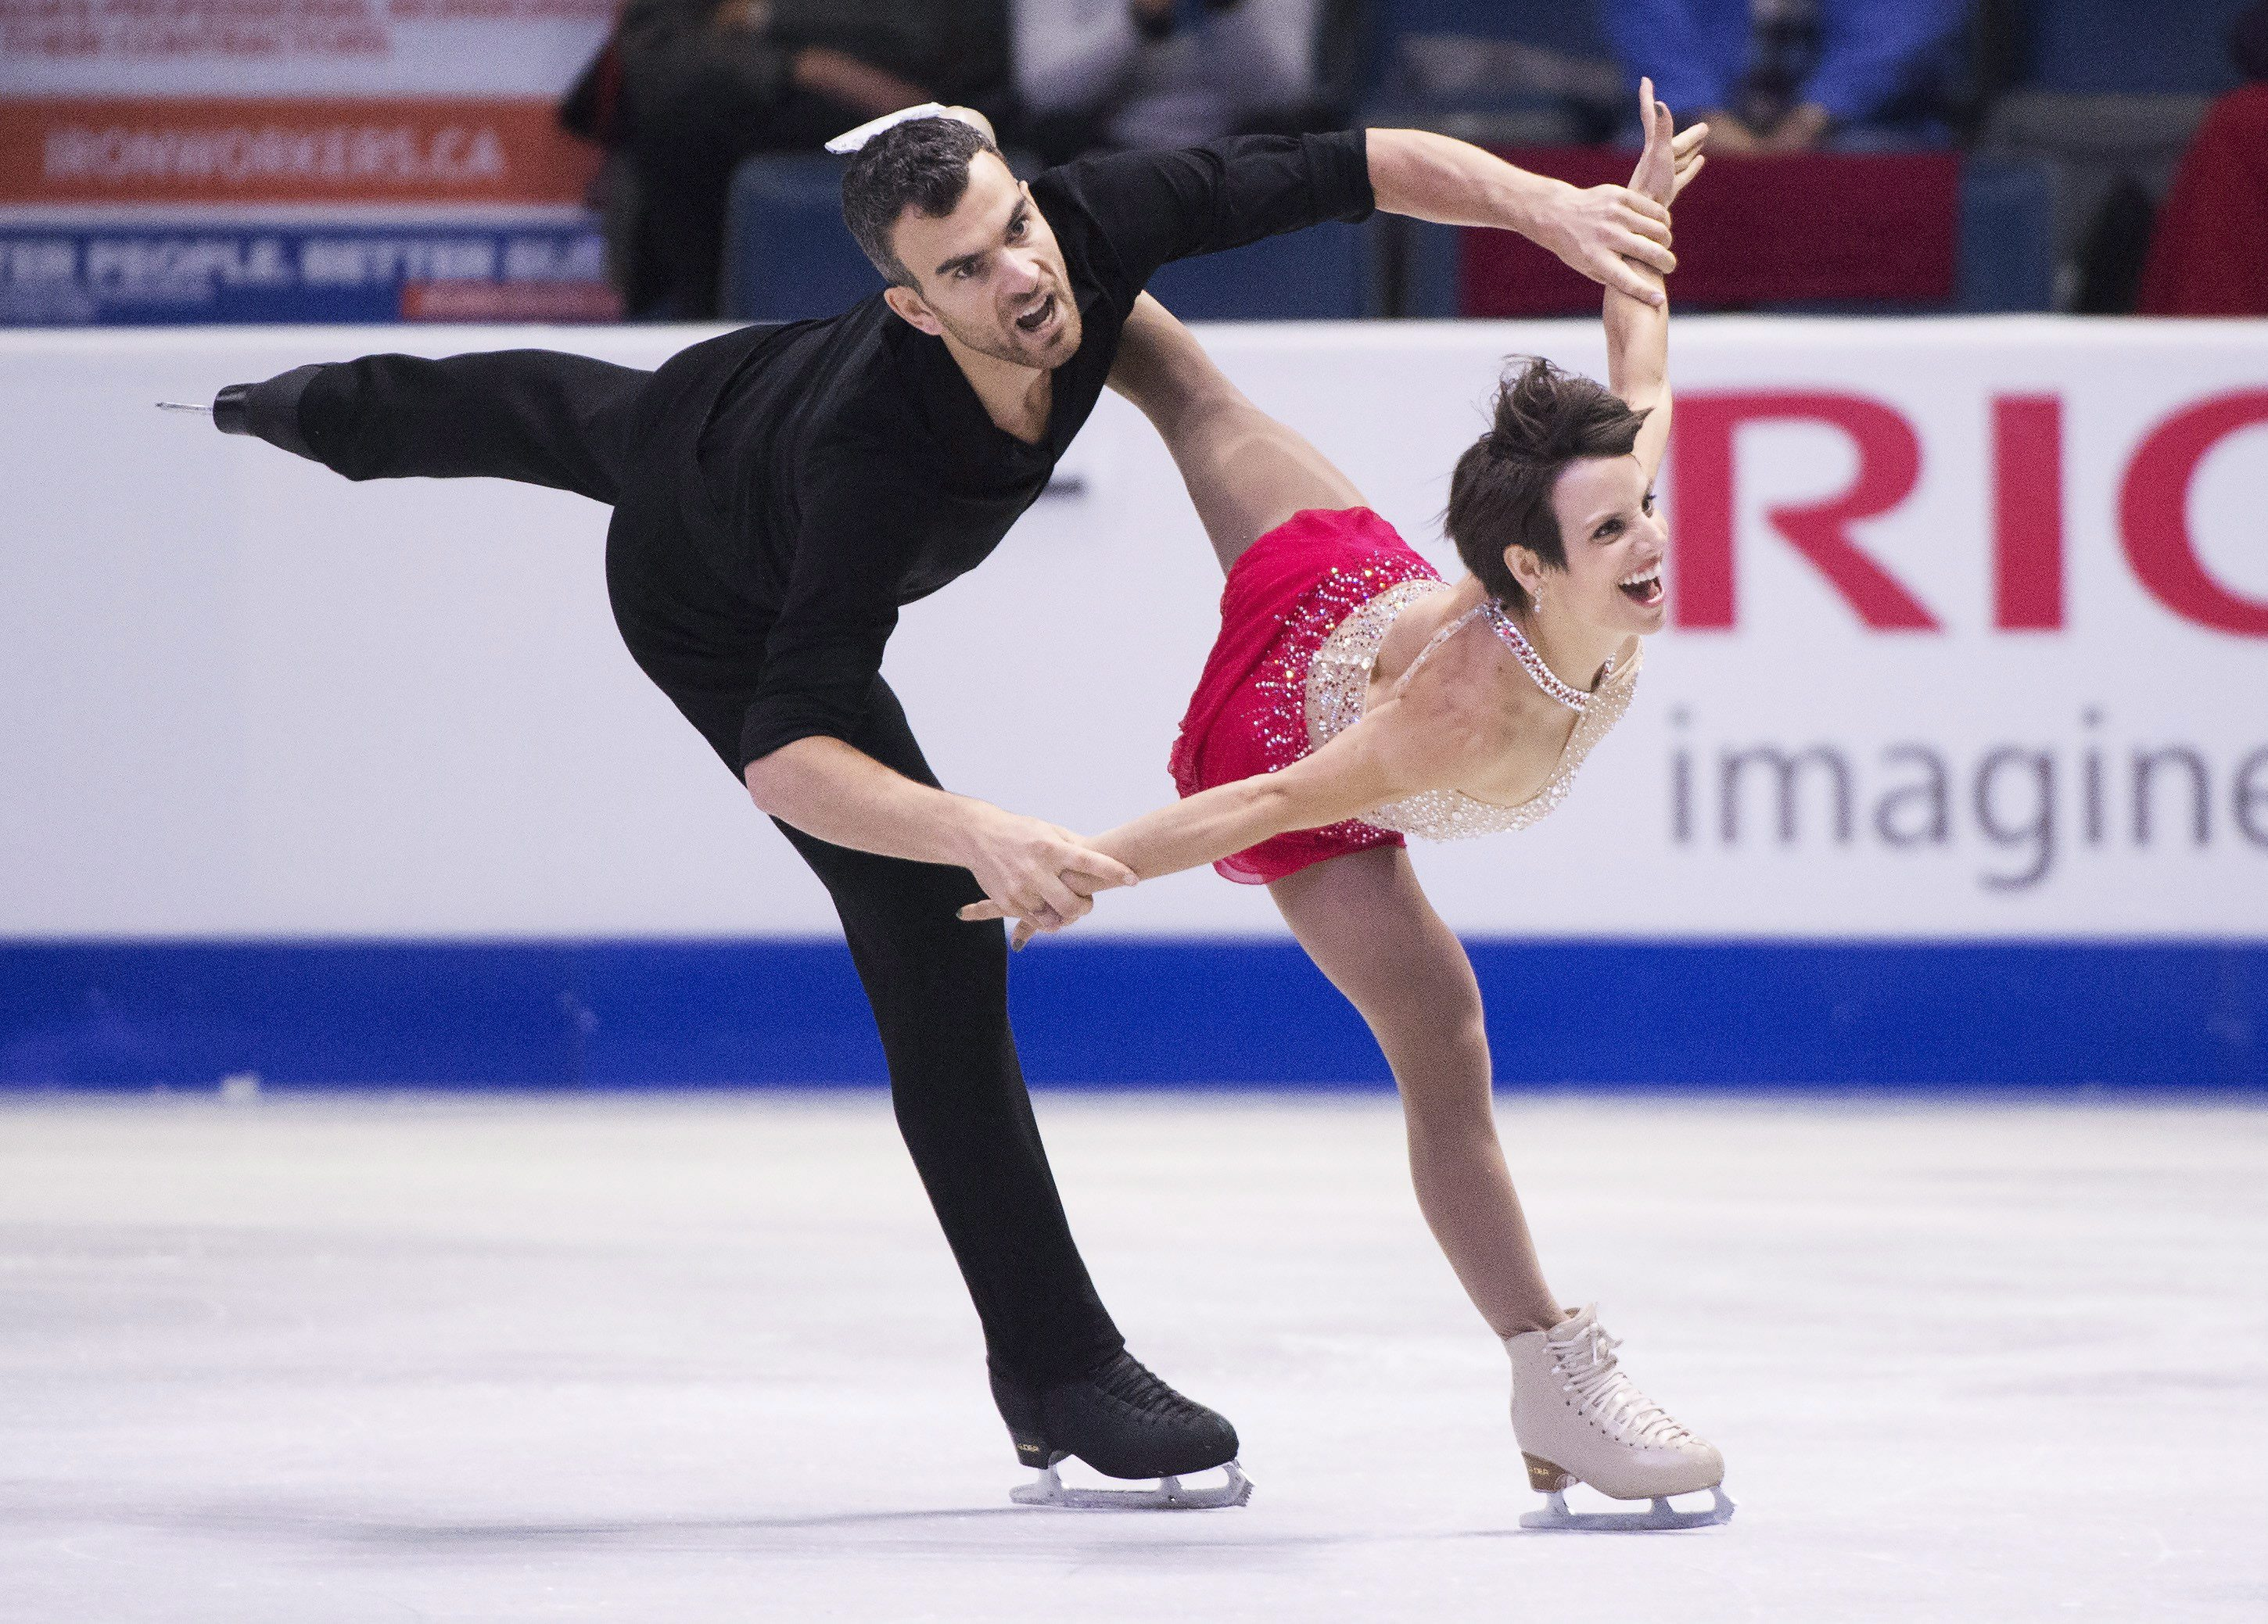 Team Canada - Duhamel and Radford - Skate Canada International